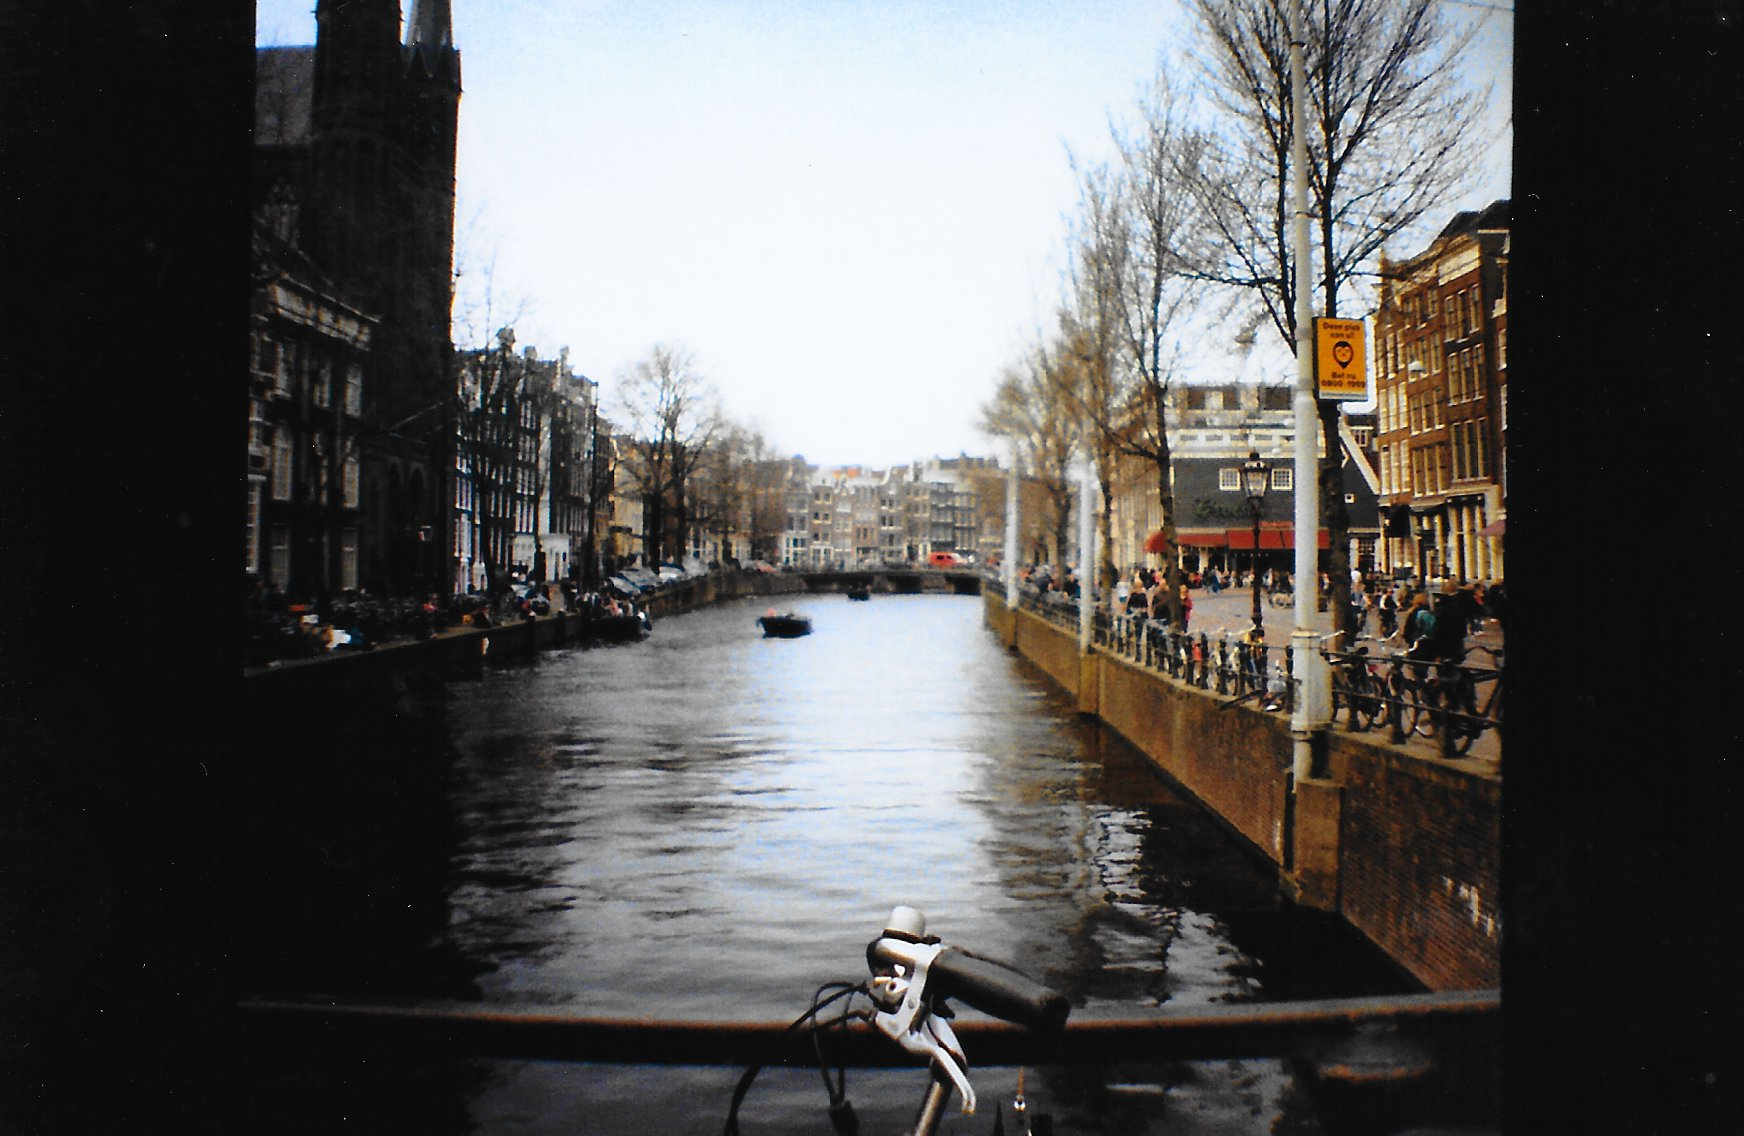 Amsterdam in 35mm